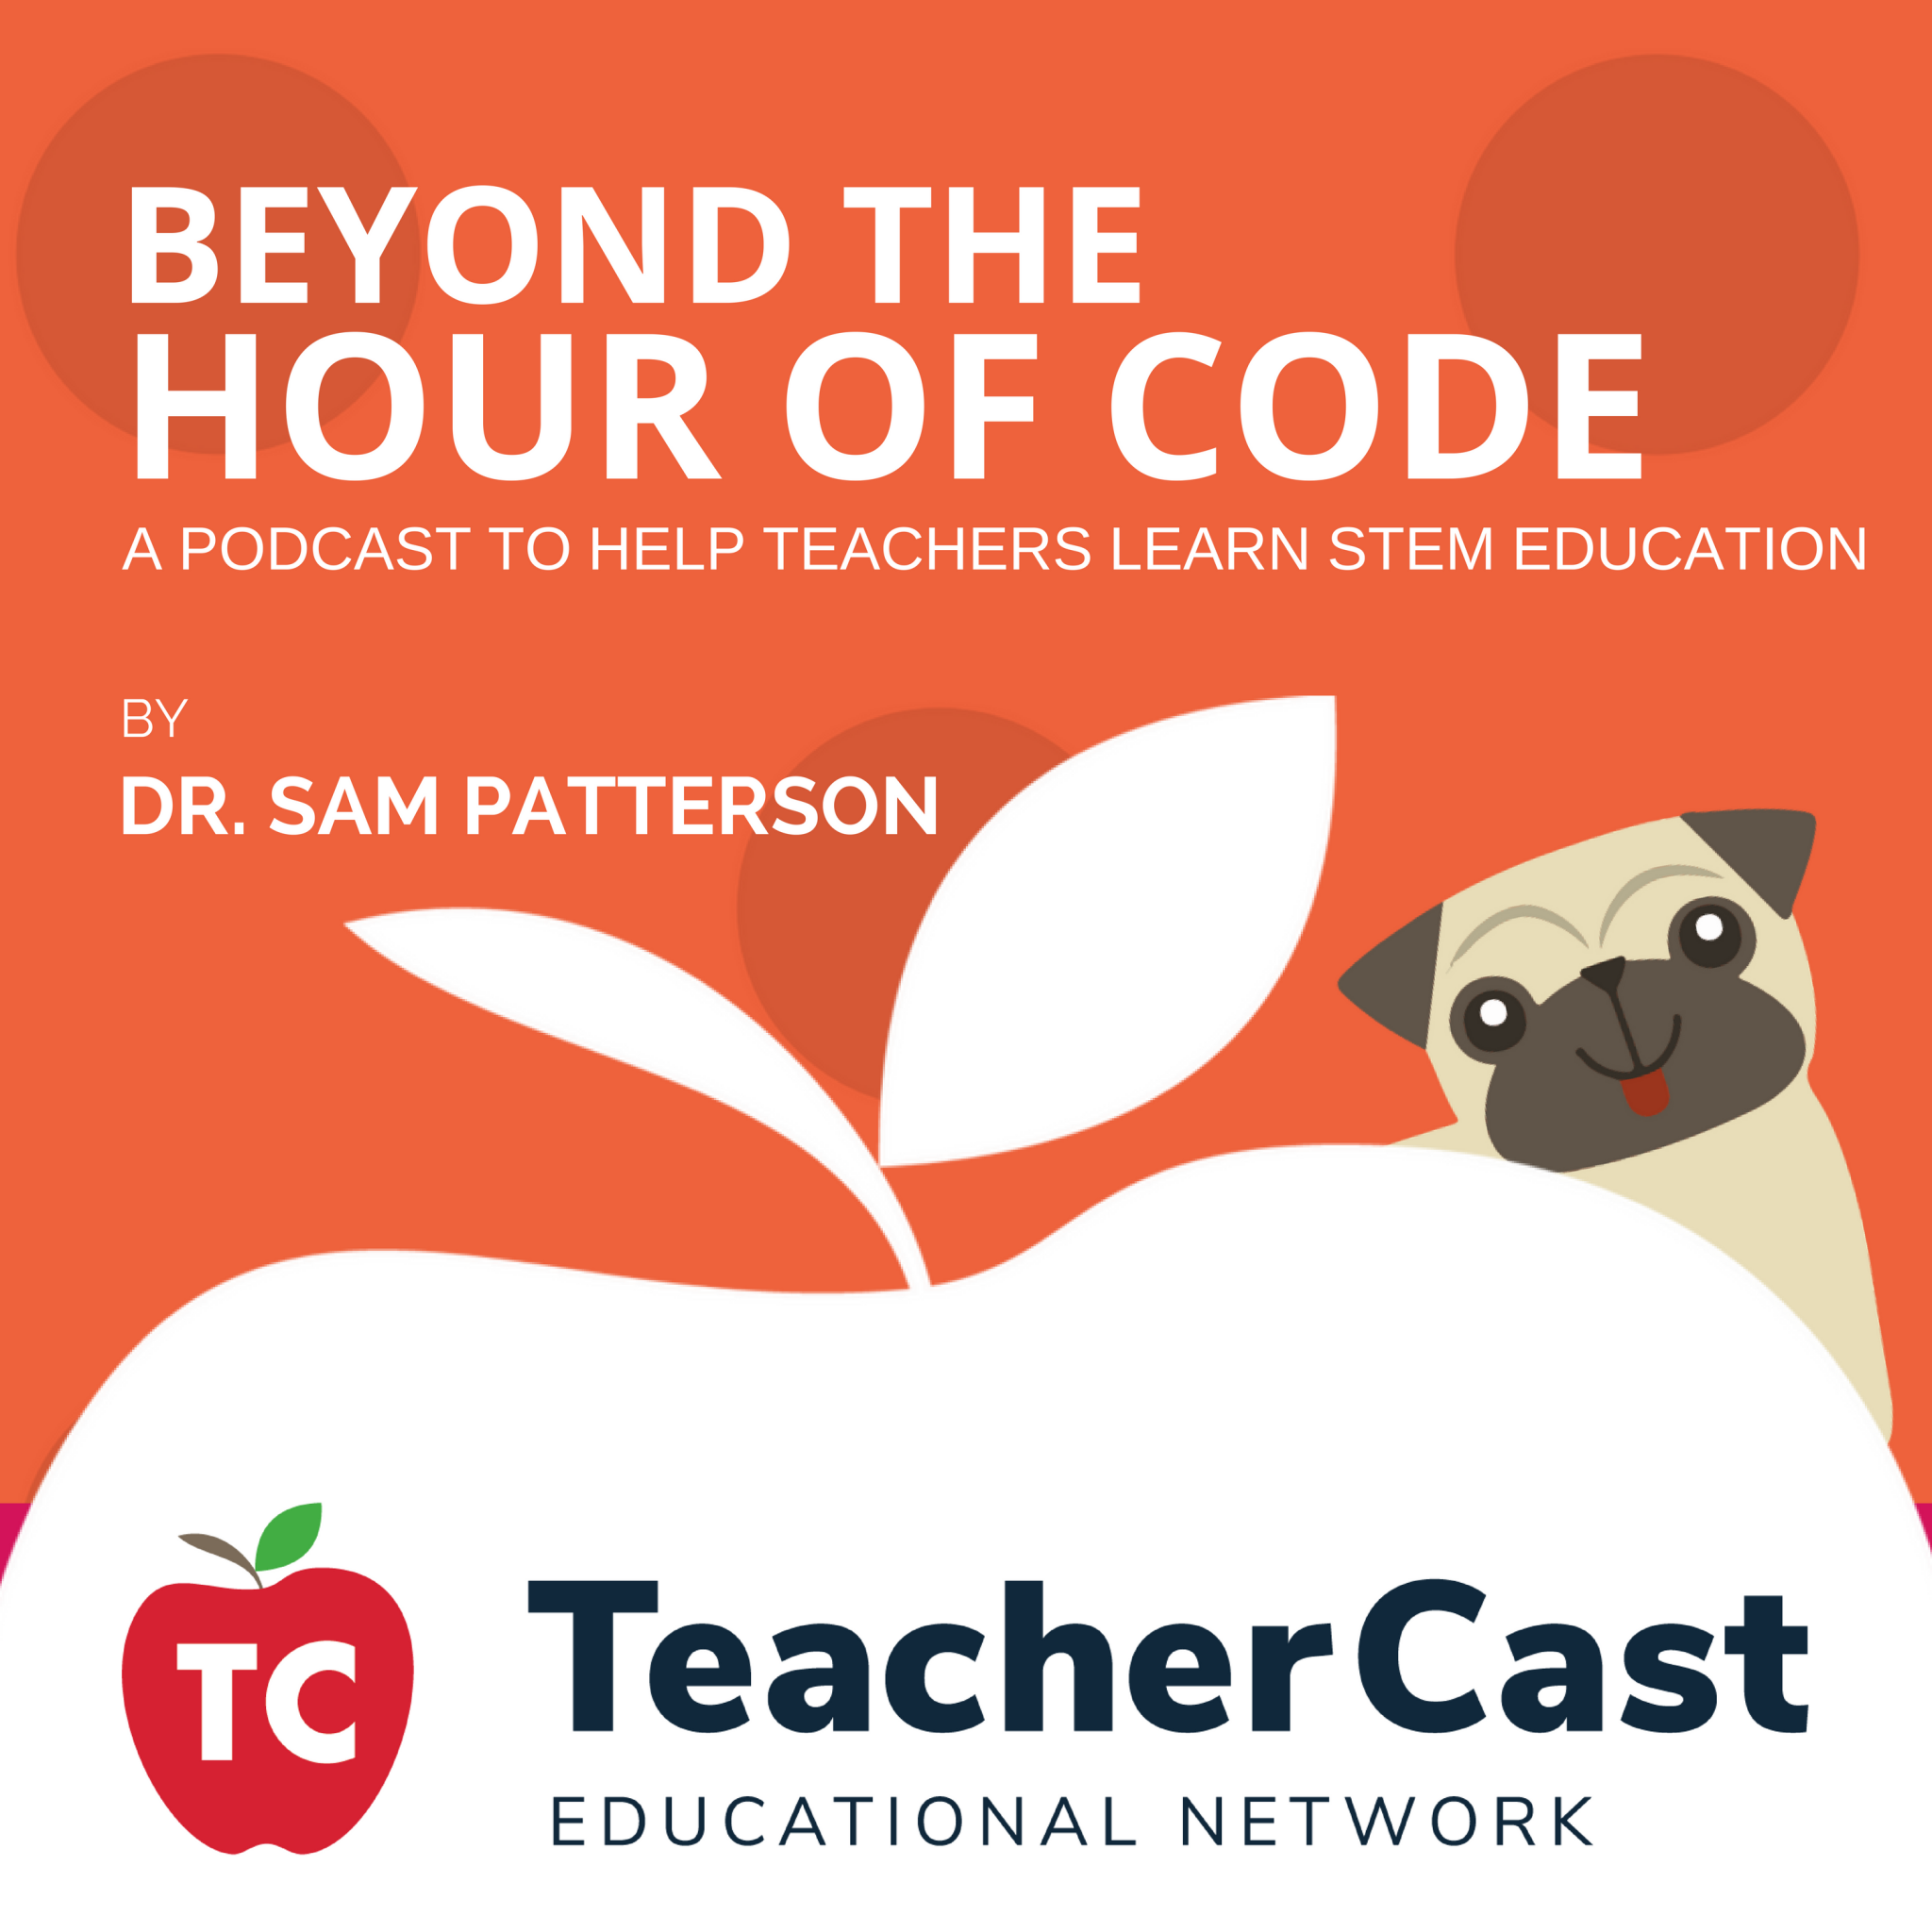 Beyond the Hour of Code – The TeacherCast Educational Network